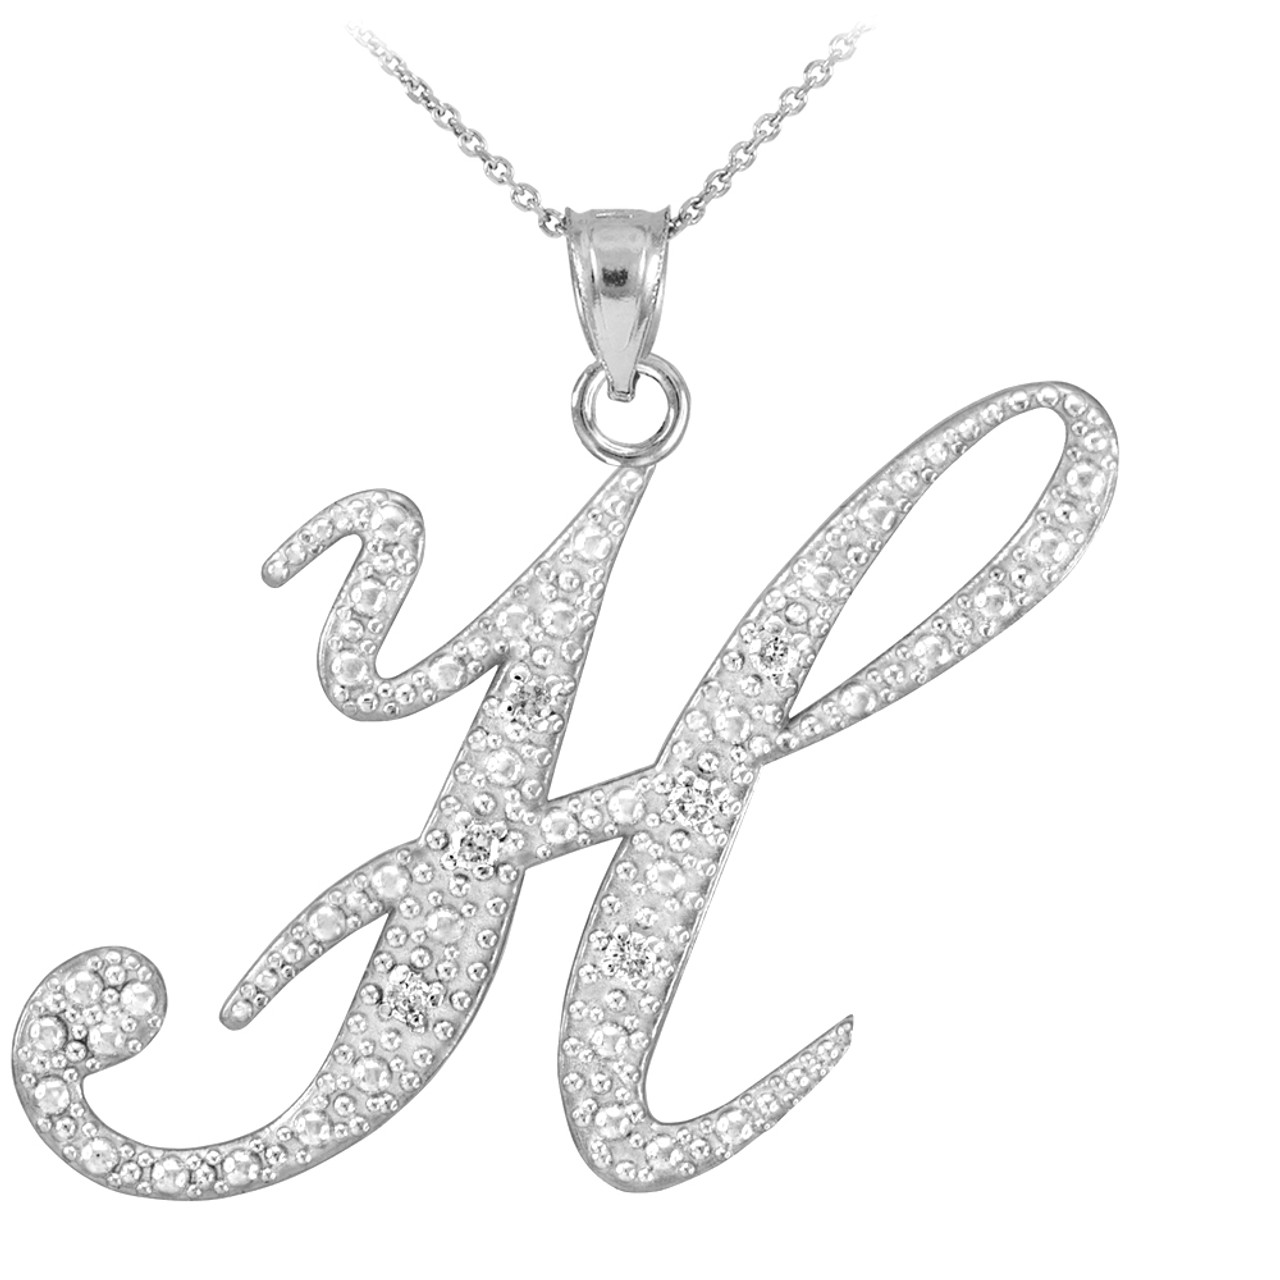 14k white gold letter script quothquot diamond initial pendant With letter pendant necklace white gold